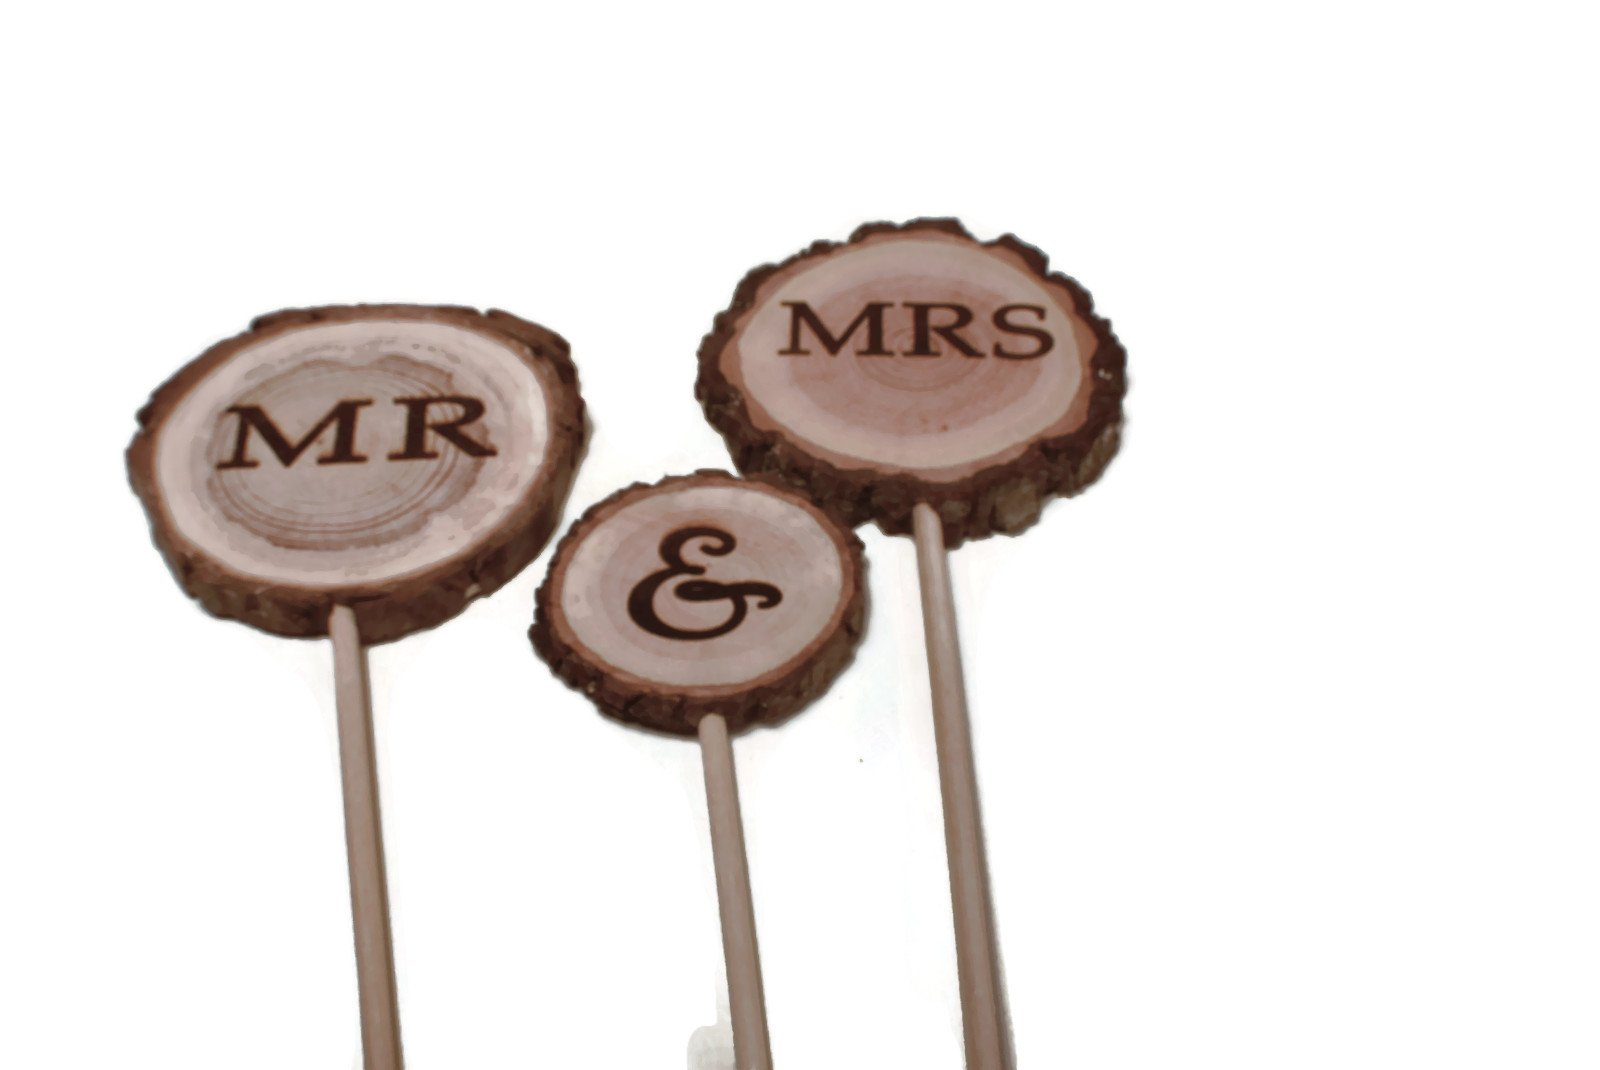 Mr & Mrs Rustic Wedding Cake topper 3 piece set, wood slice cake topper by OzarkCraftWood (Image #2)